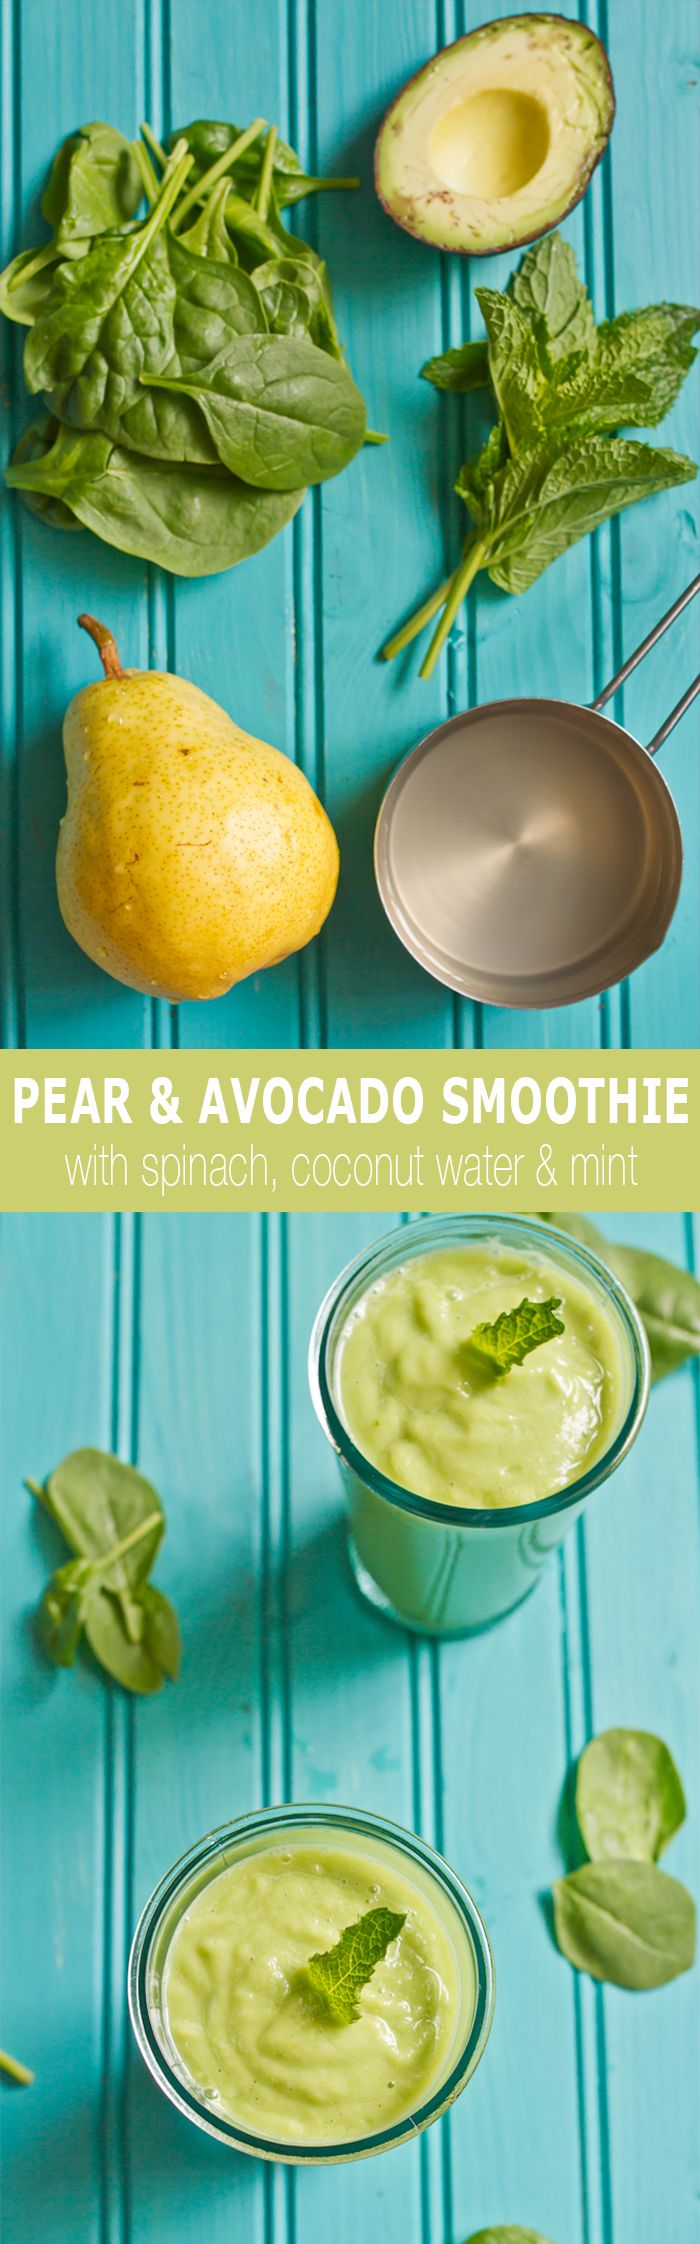 Power Punch pear and avocado smoothie recipe featuring spinach, pear, avocado, coconut water and mint